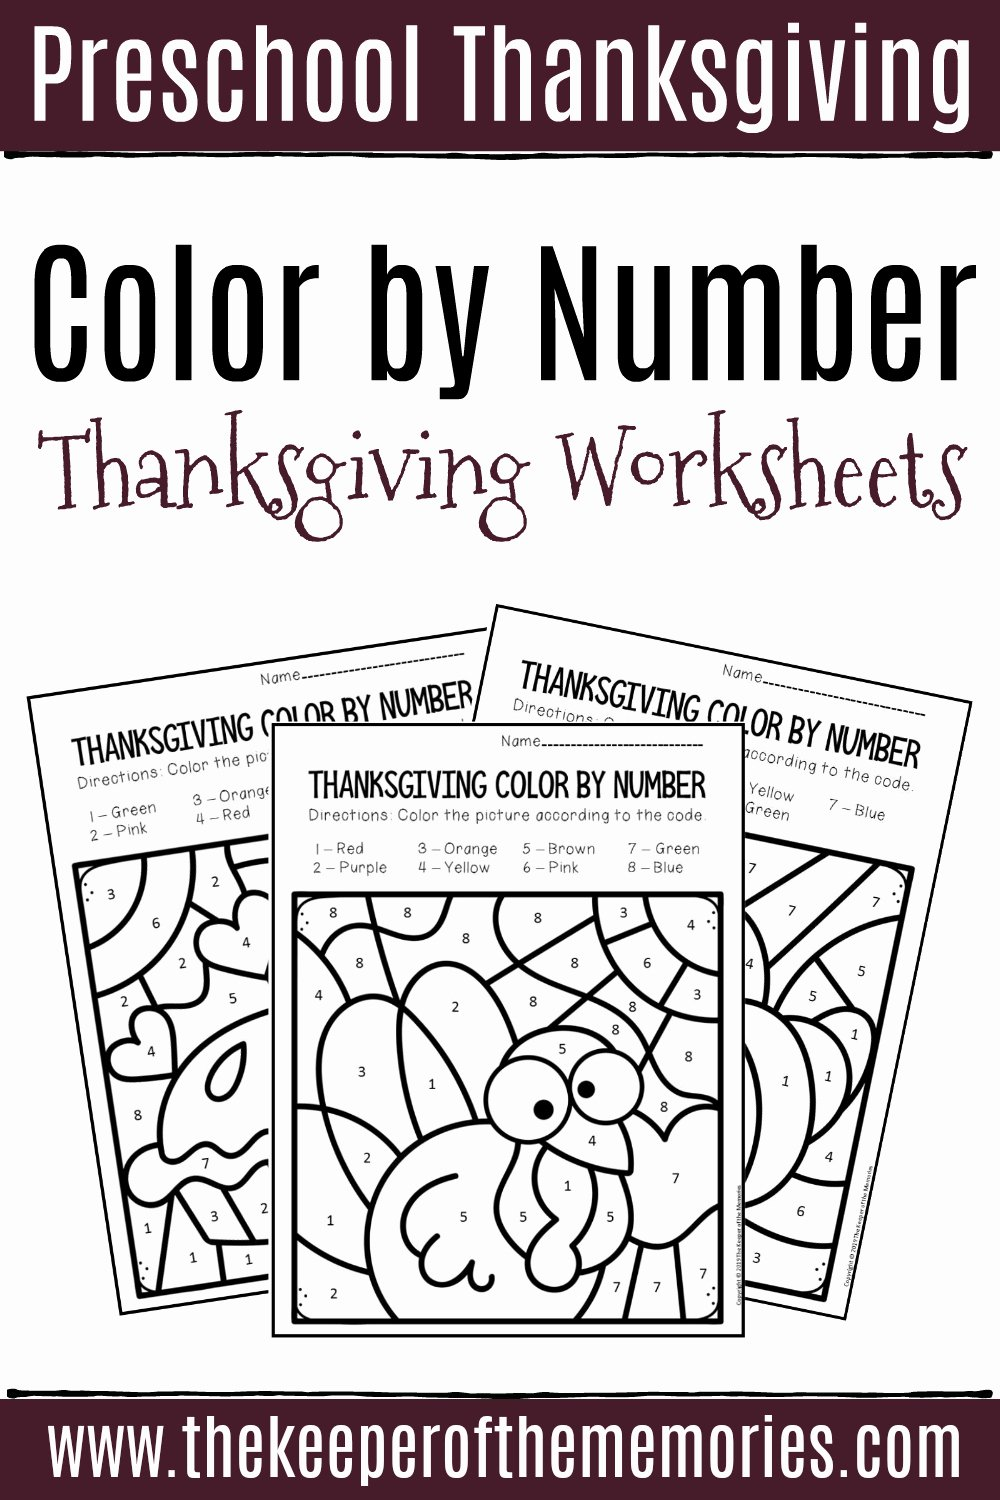 Thanksgiving Worksheets for Preschoolers New Color by Number Thanksgiving Preschool Worksheets